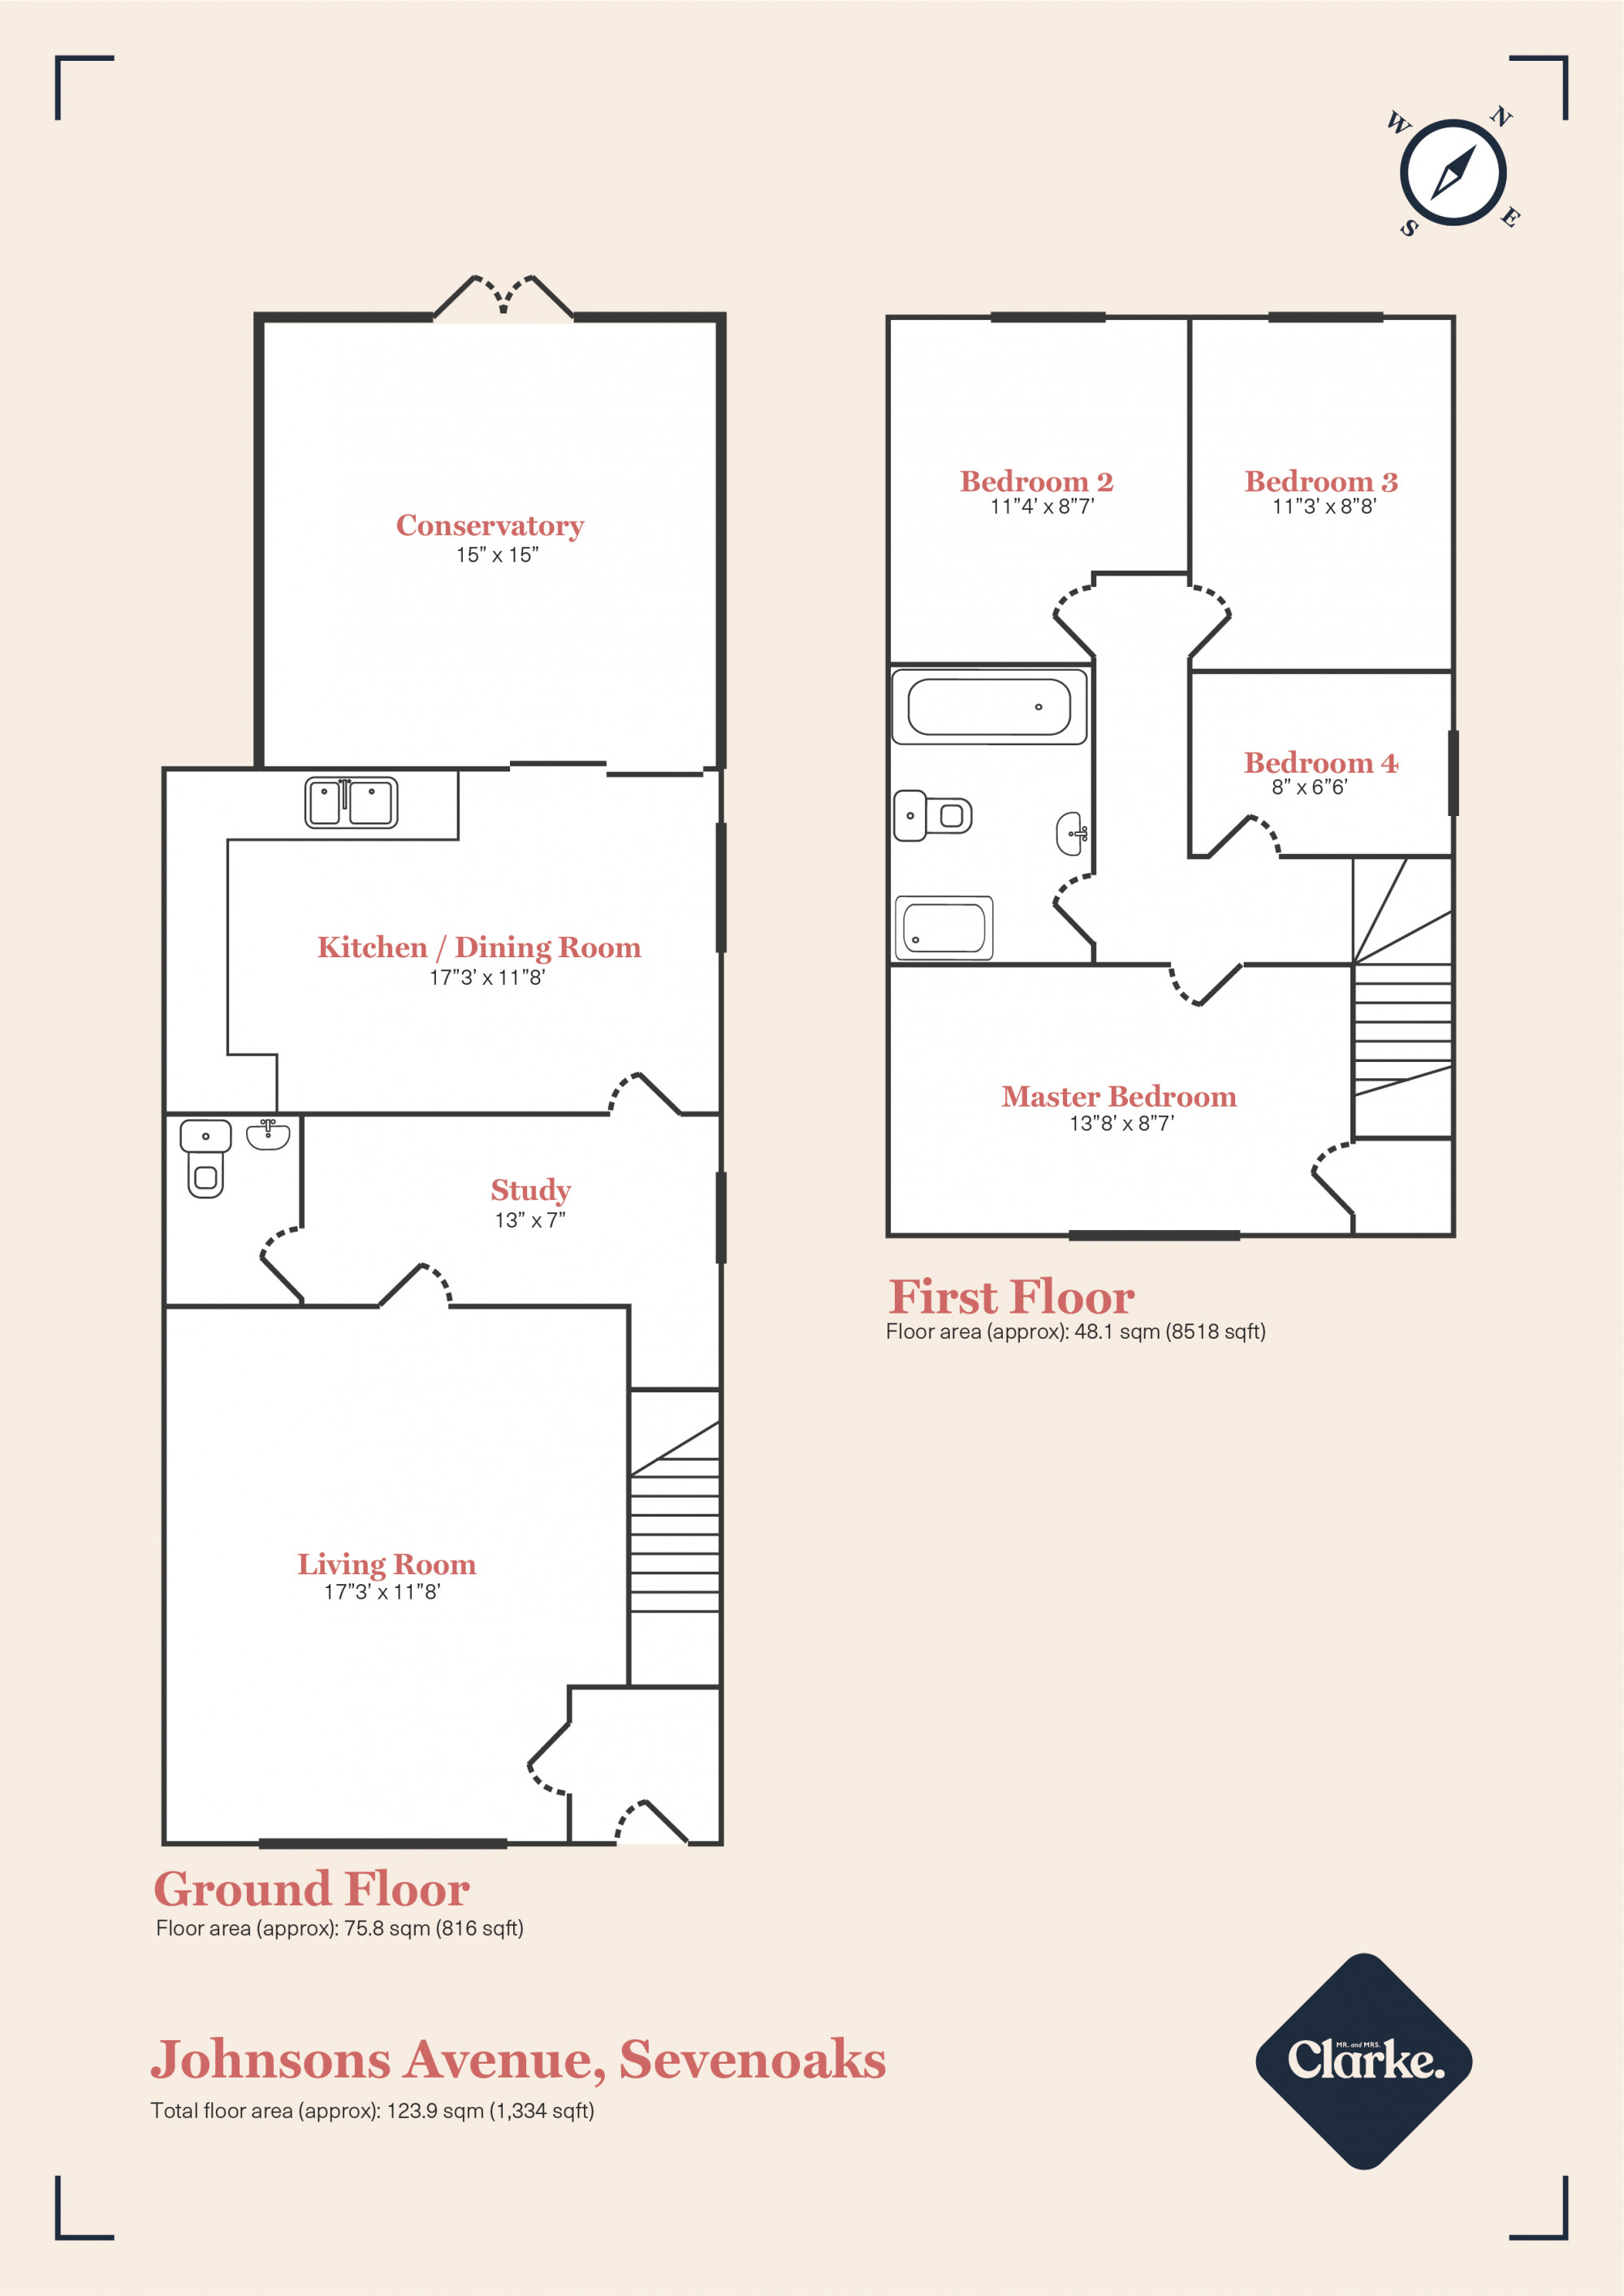 Johnsons Avenue, Sevenoaks. Floorplan.